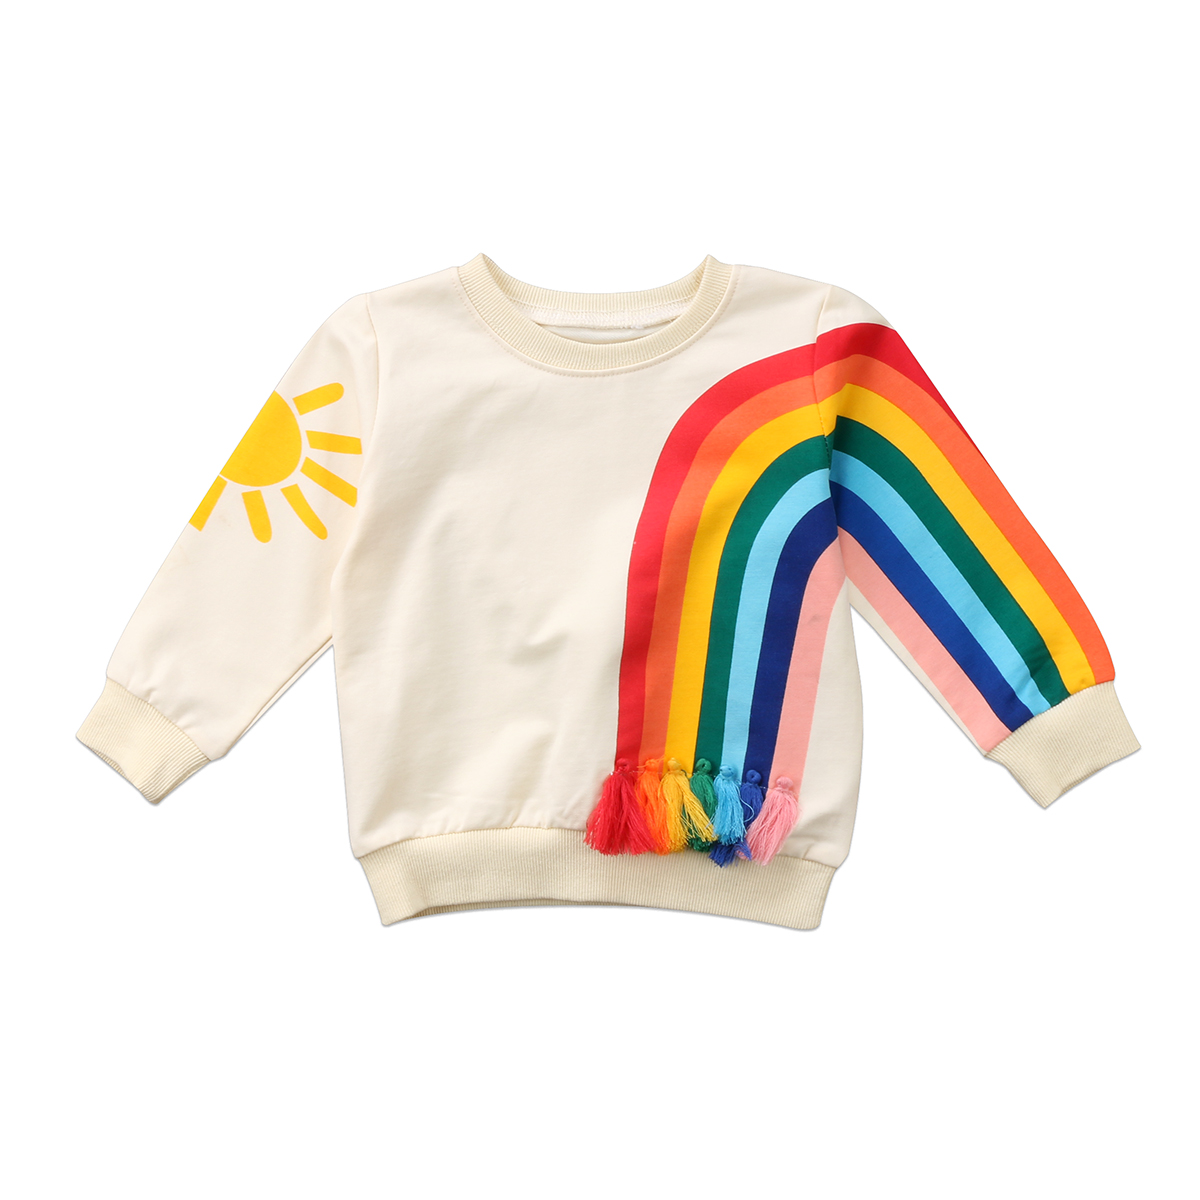 Adorable Toddler Baby Girl Tassel Sweatshirt Kid Girls Rainbow Sunshine Clothes Infantil Baby Pullover Sweats Sweatshirt NEW